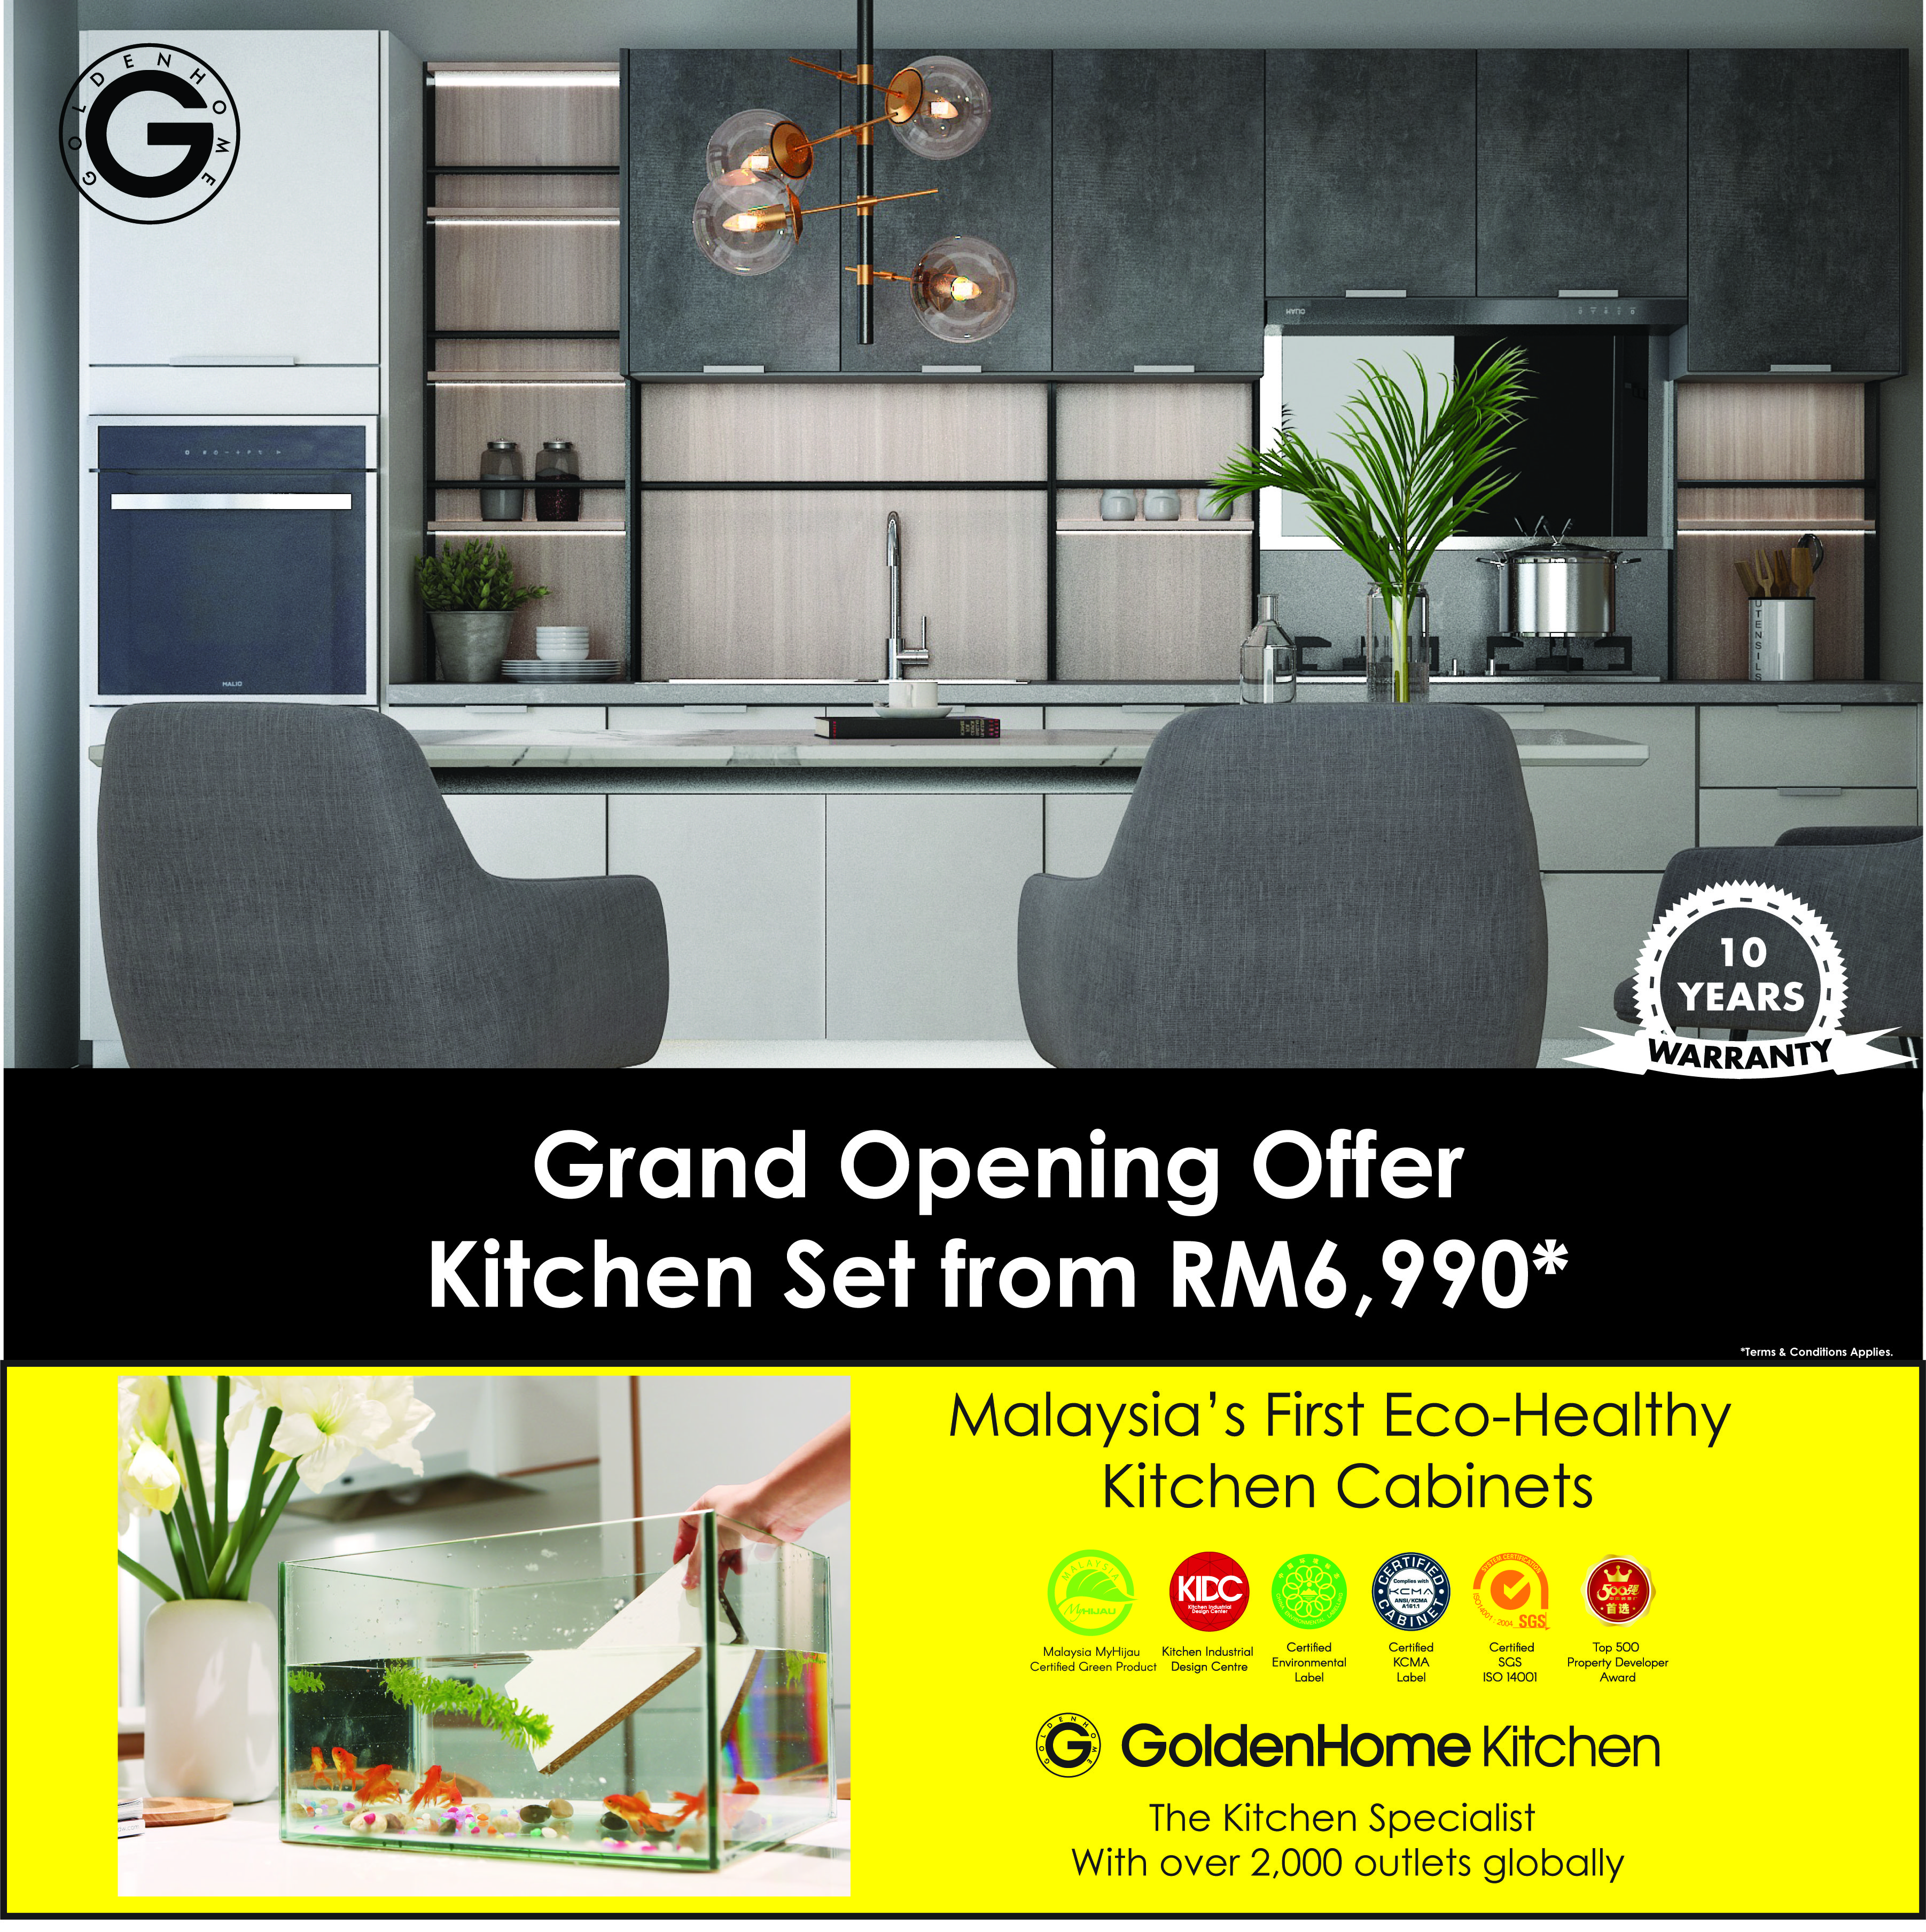 GoldenHome Kitchen